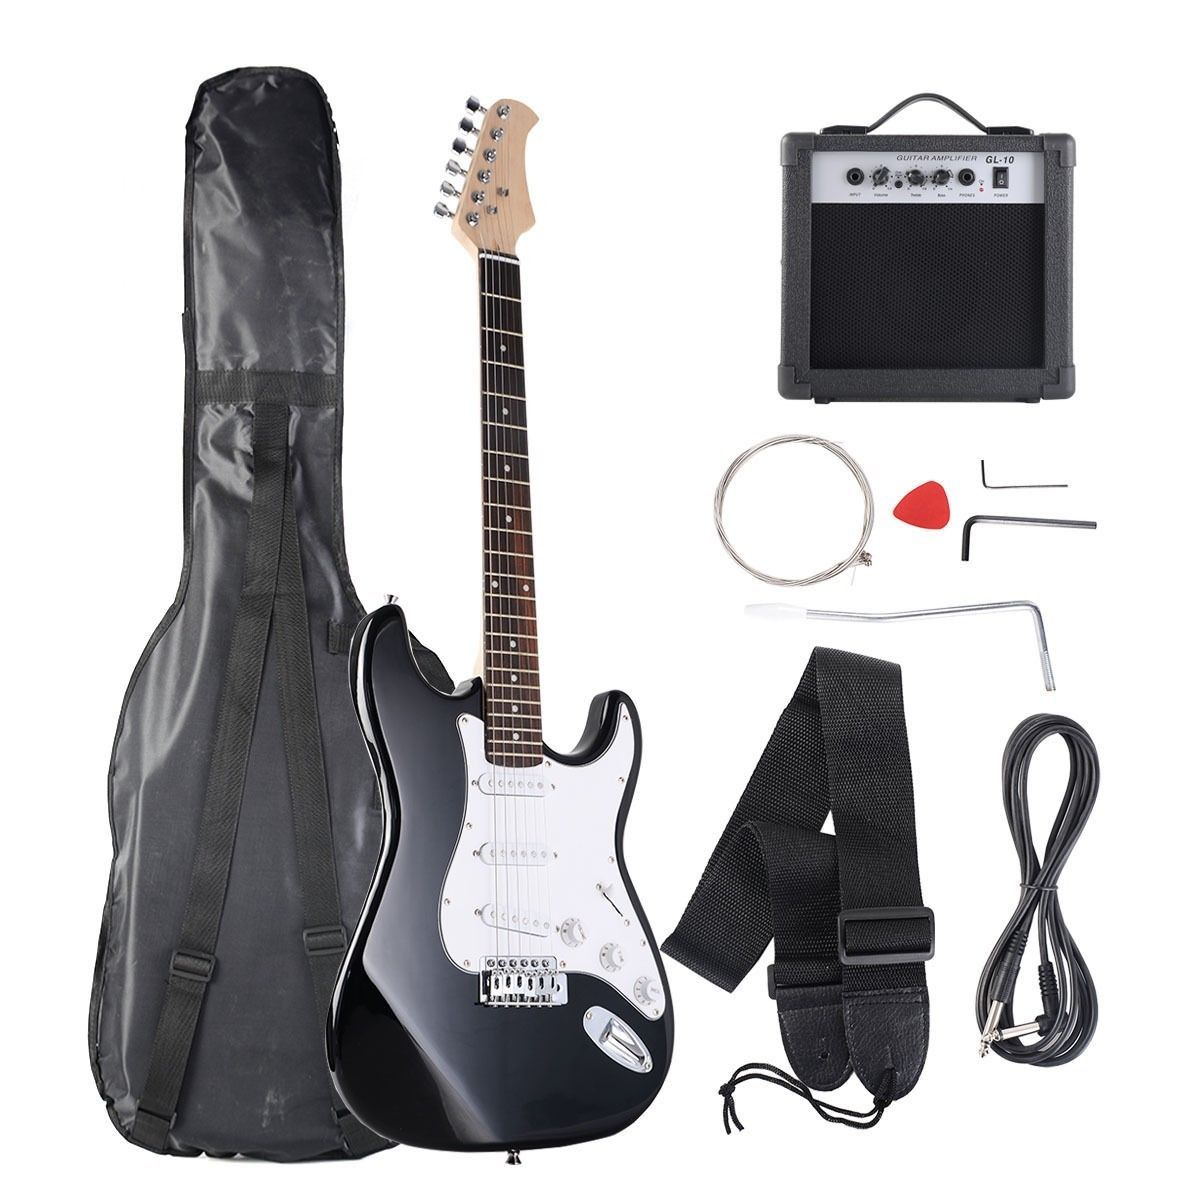 black white full size electric guitar 10w amp cord strap gigbag set new electric guitar. Black Bedroom Furniture Sets. Home Design Ideas